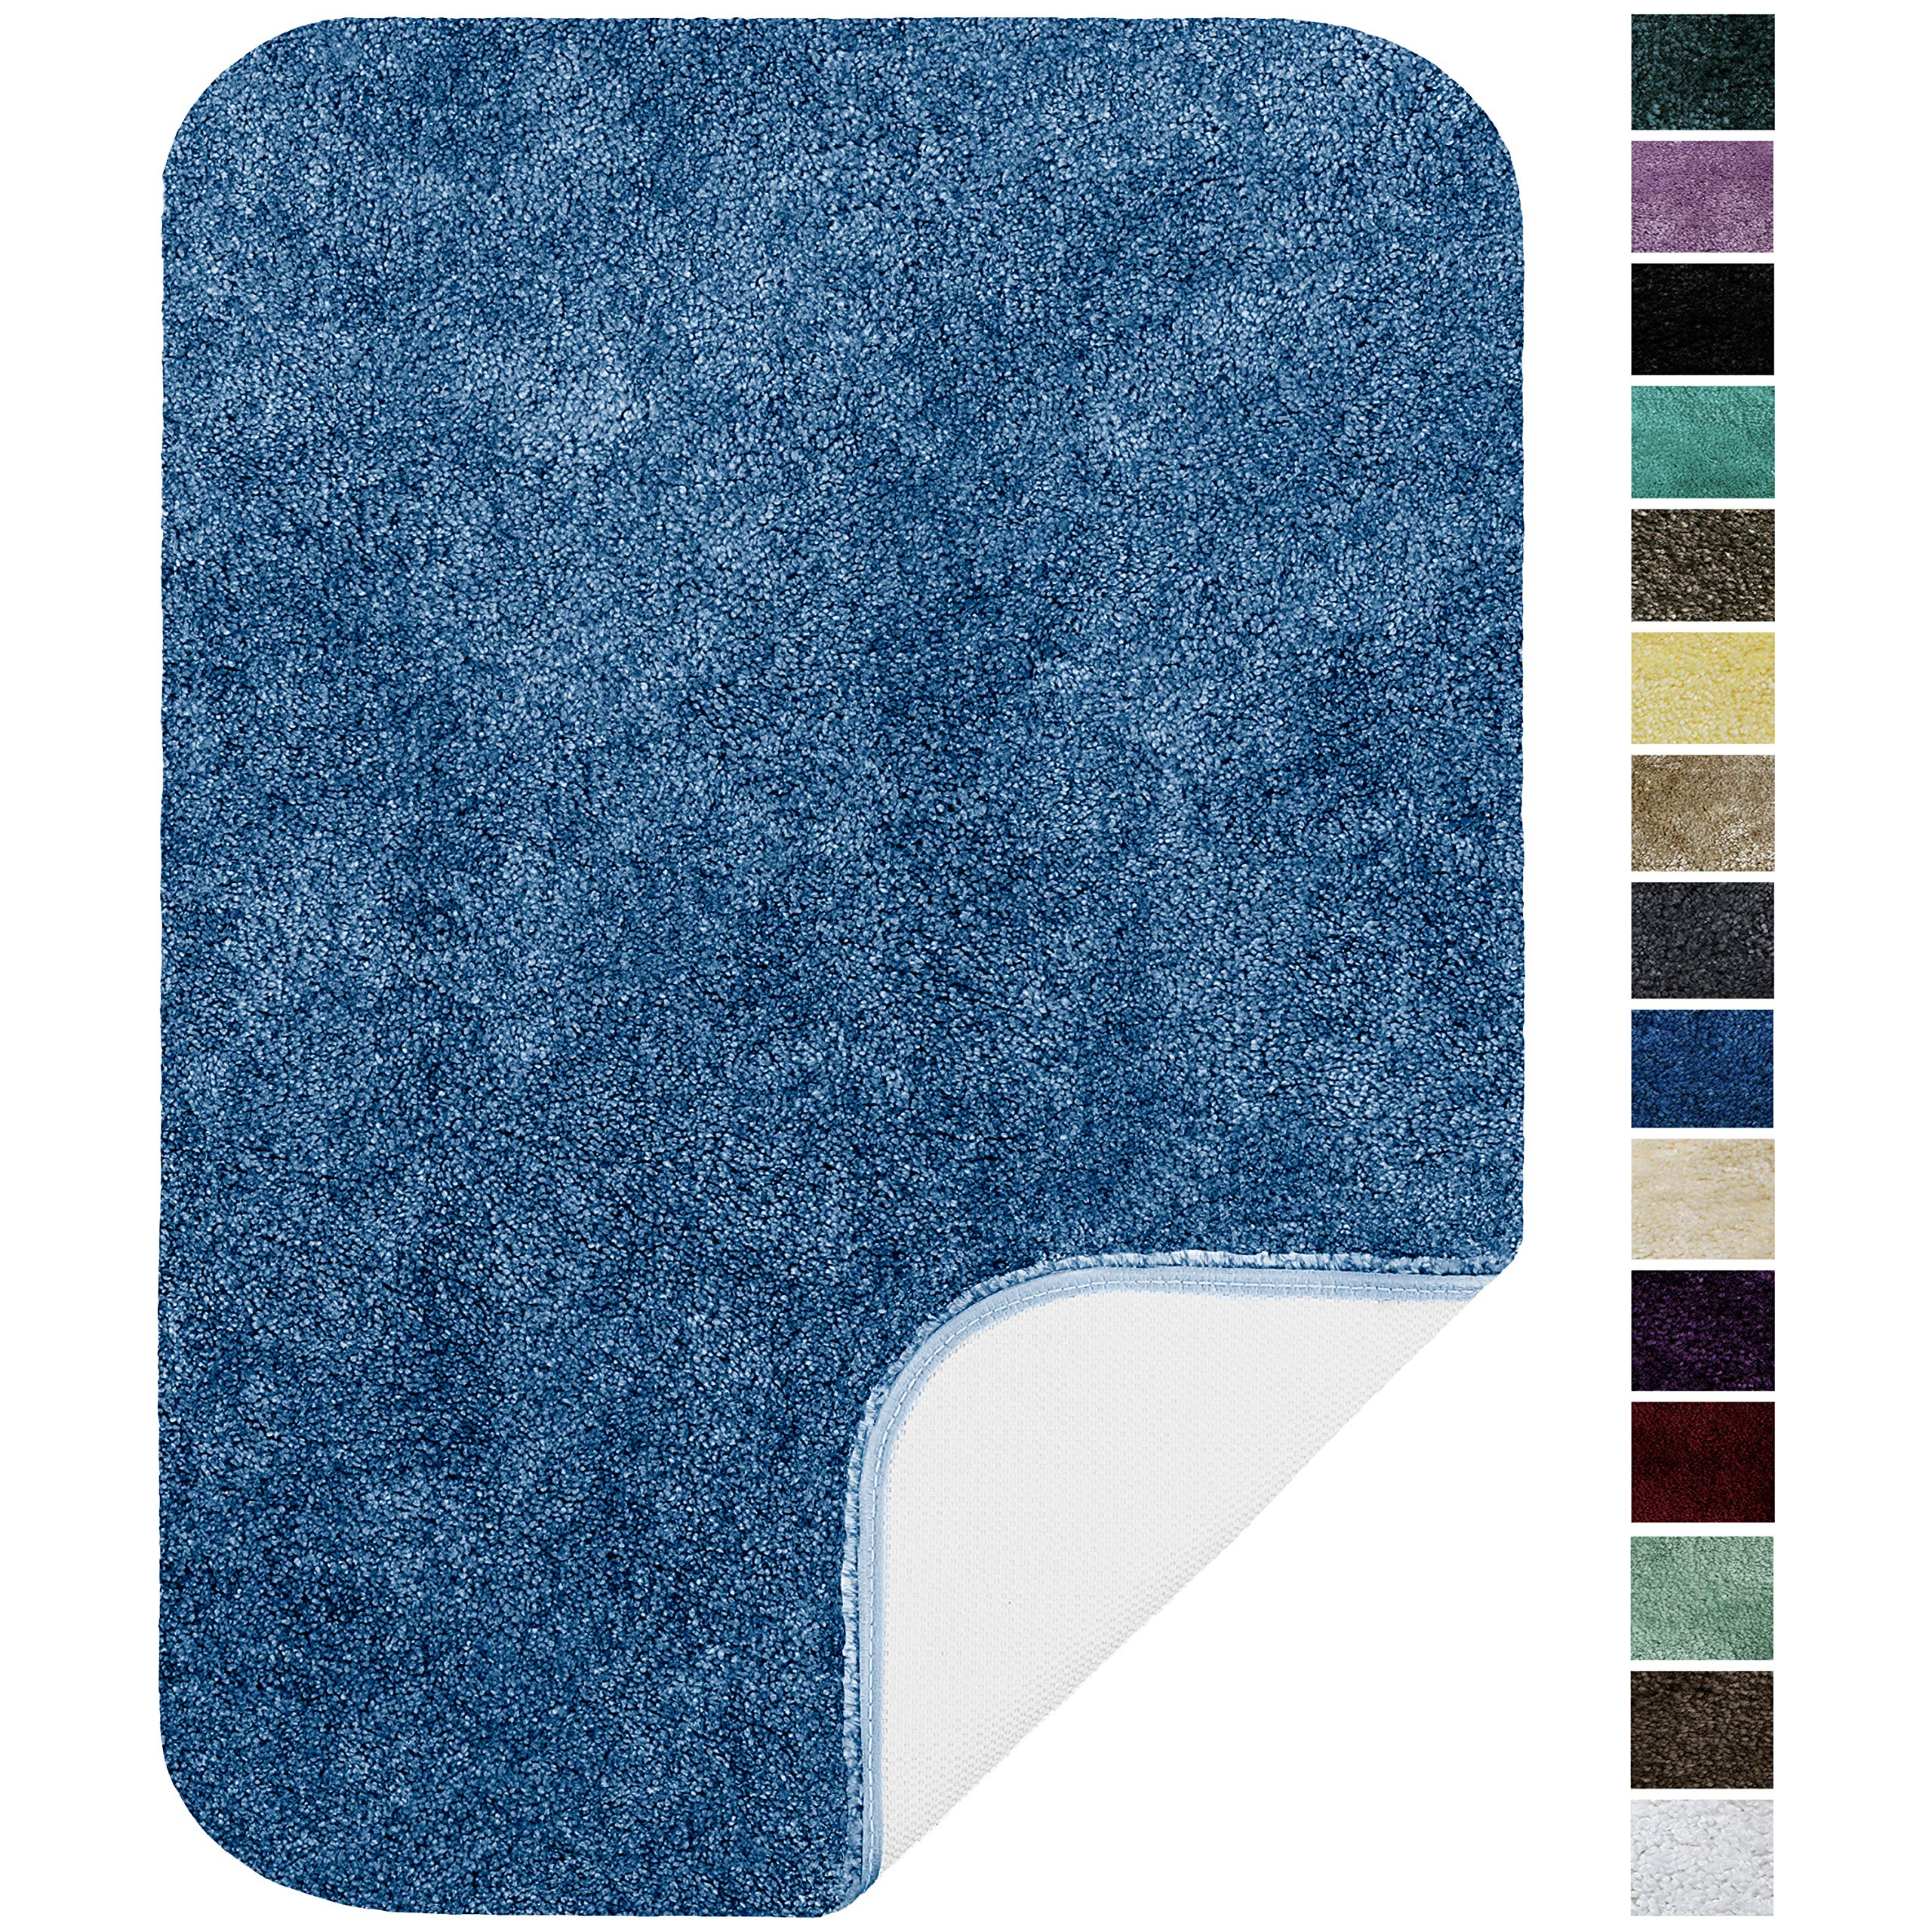 Maples Rugs Bathroom Rugs-Colorsoft 20'' x 34'' Non Slip Washable Bath Mat [Made in USA} Soft & Quick Dry for Vanity and Shower, Federal Blue by Maples Rugs